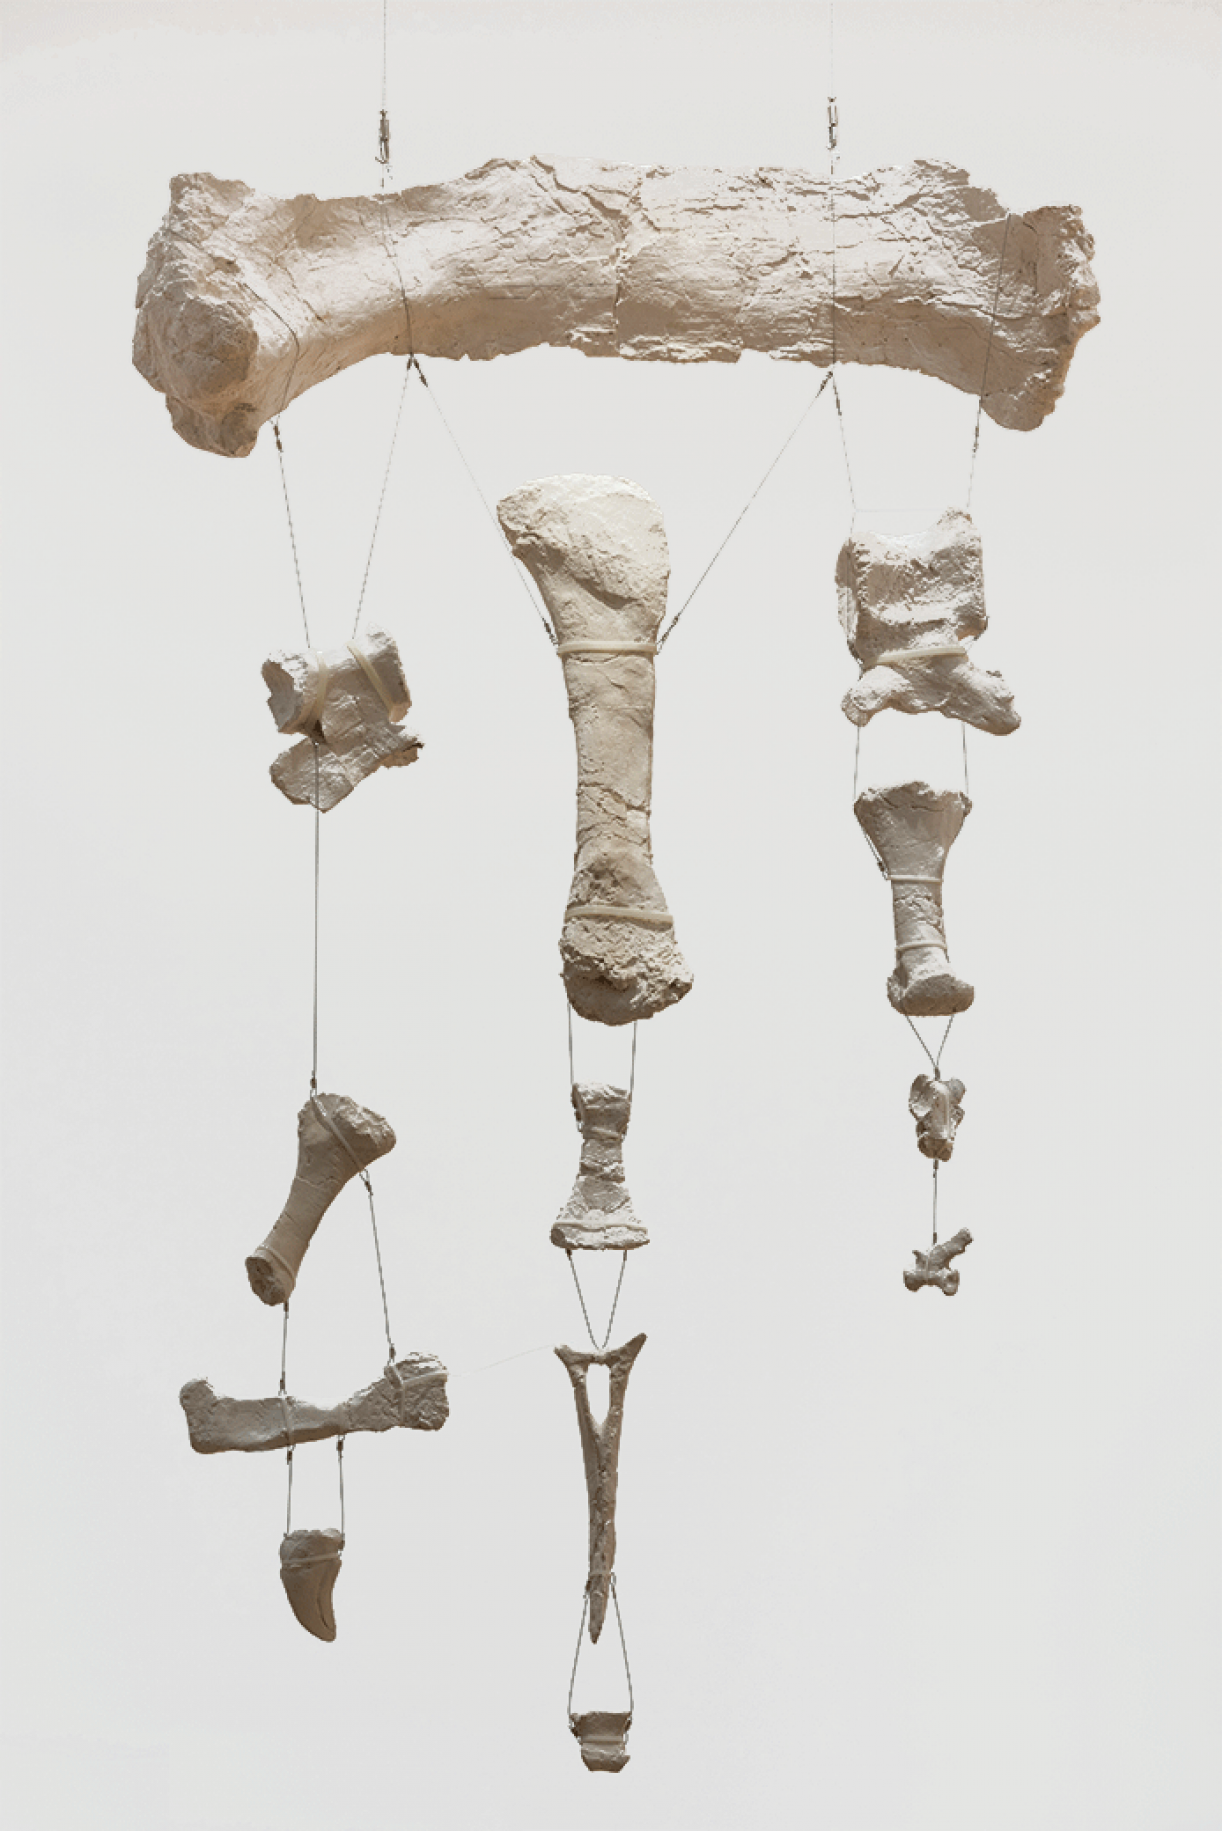 Untitled (mobile of Tazoudasaurus Naimi bone fragements from the Late Early Jurassic Period, Morocco), 2015, plaster, wire, variable dimensions